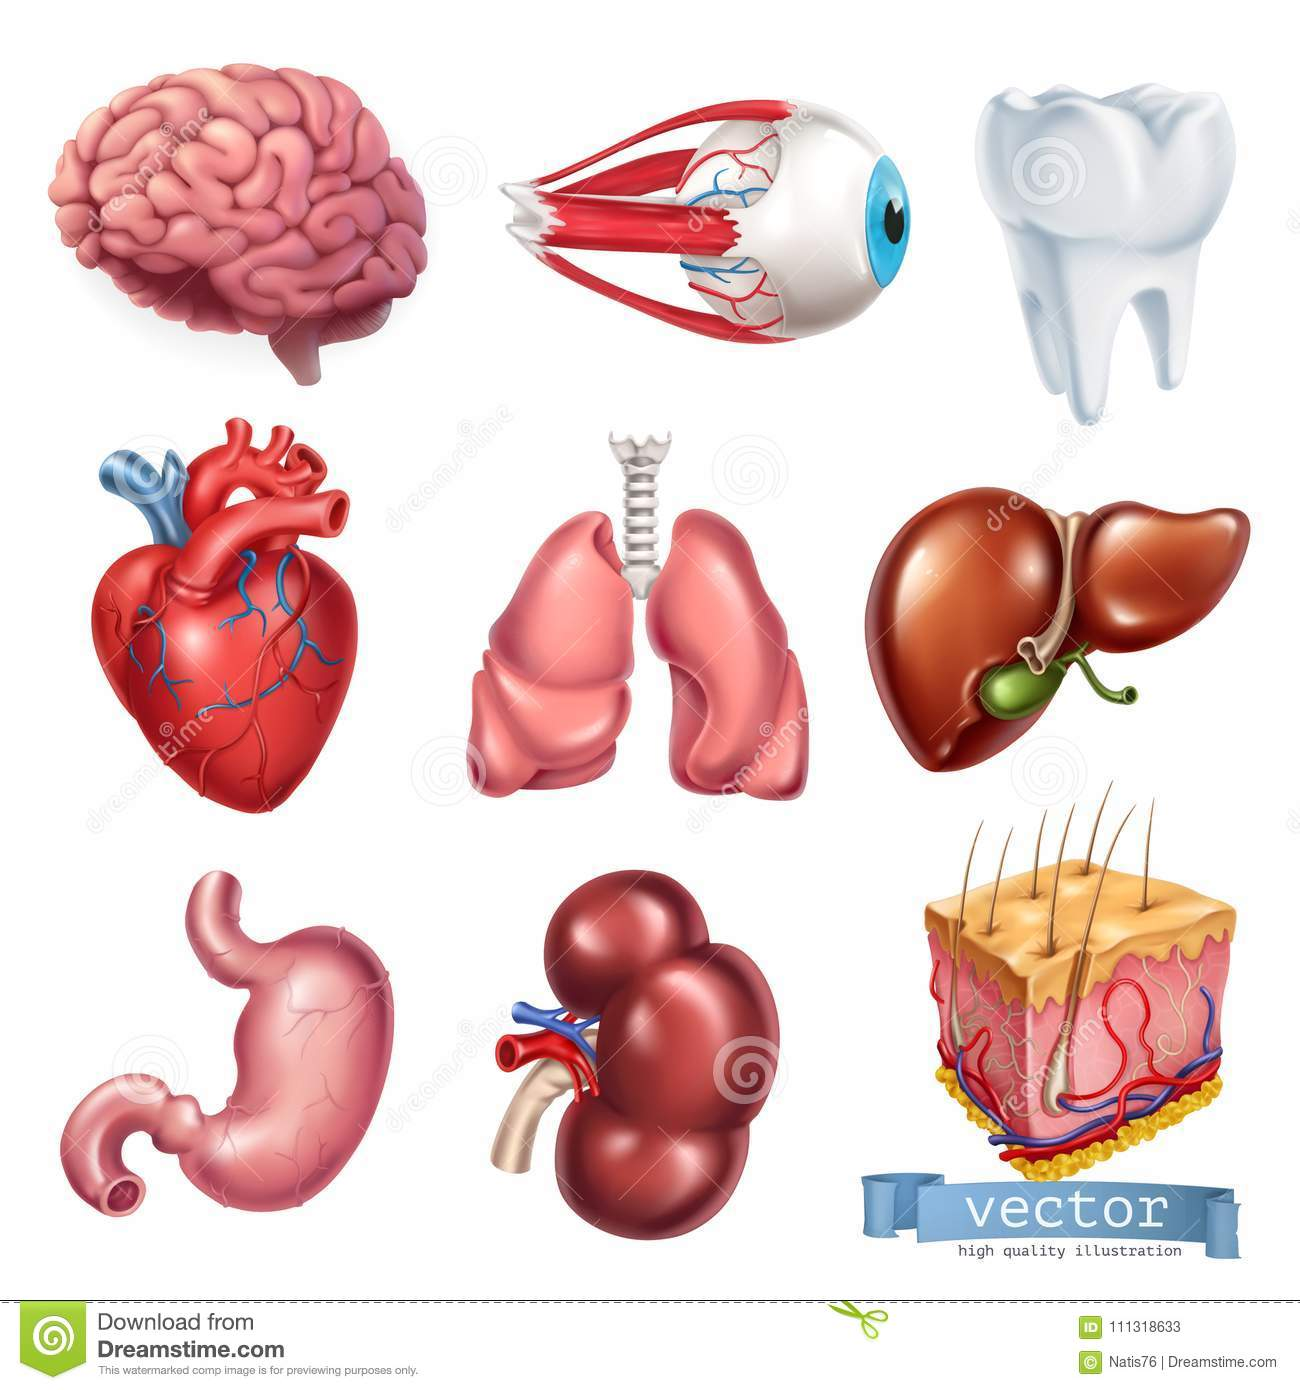 Human heart, brain, eye, tooth, lungs, liver, stomach, kidney, skin. 3d vector icon set